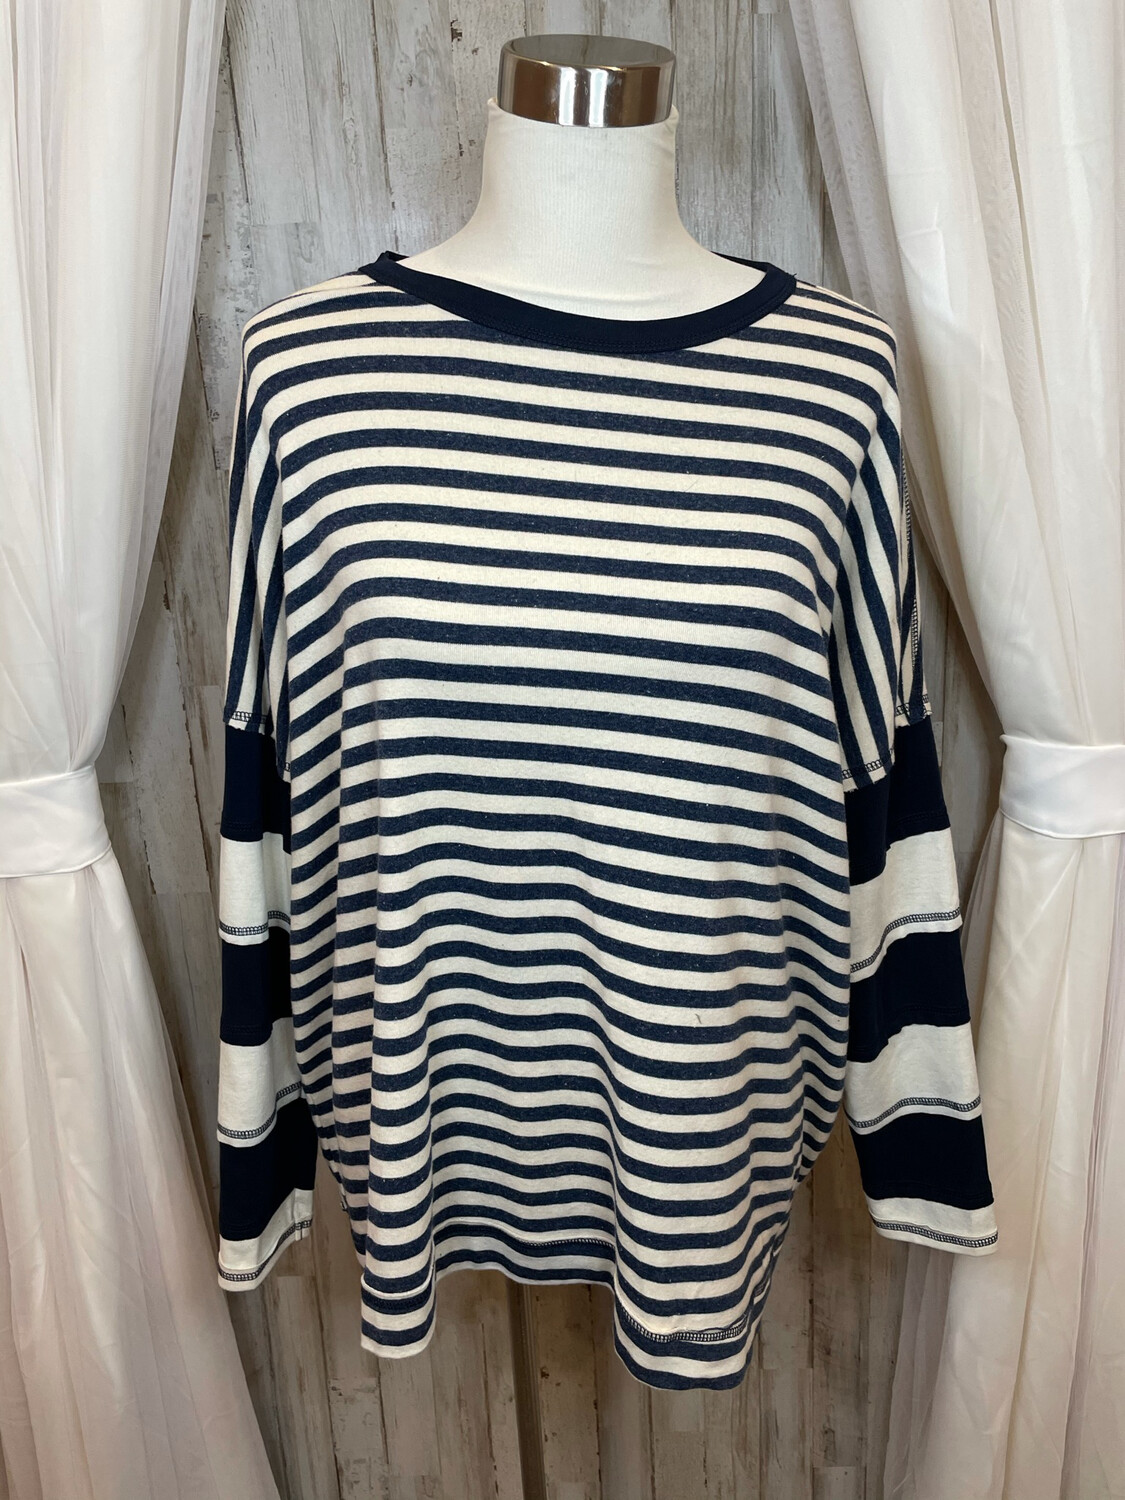 Easel Navy & White Striped Long Sleeve Top - M